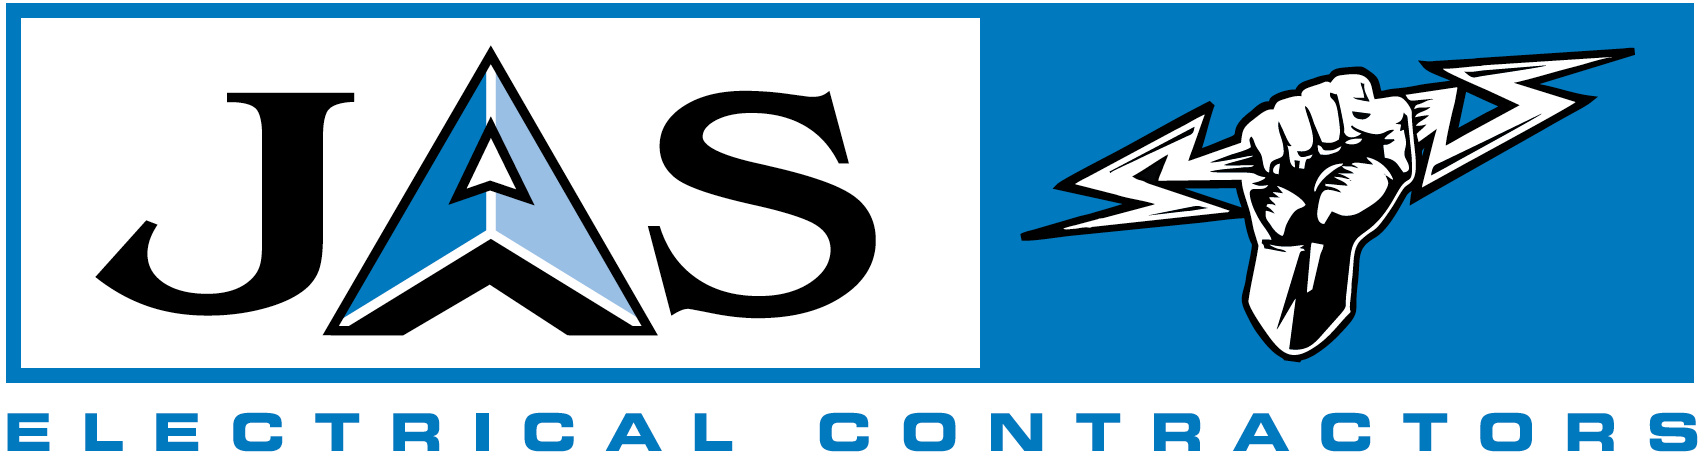 JAS Electrical